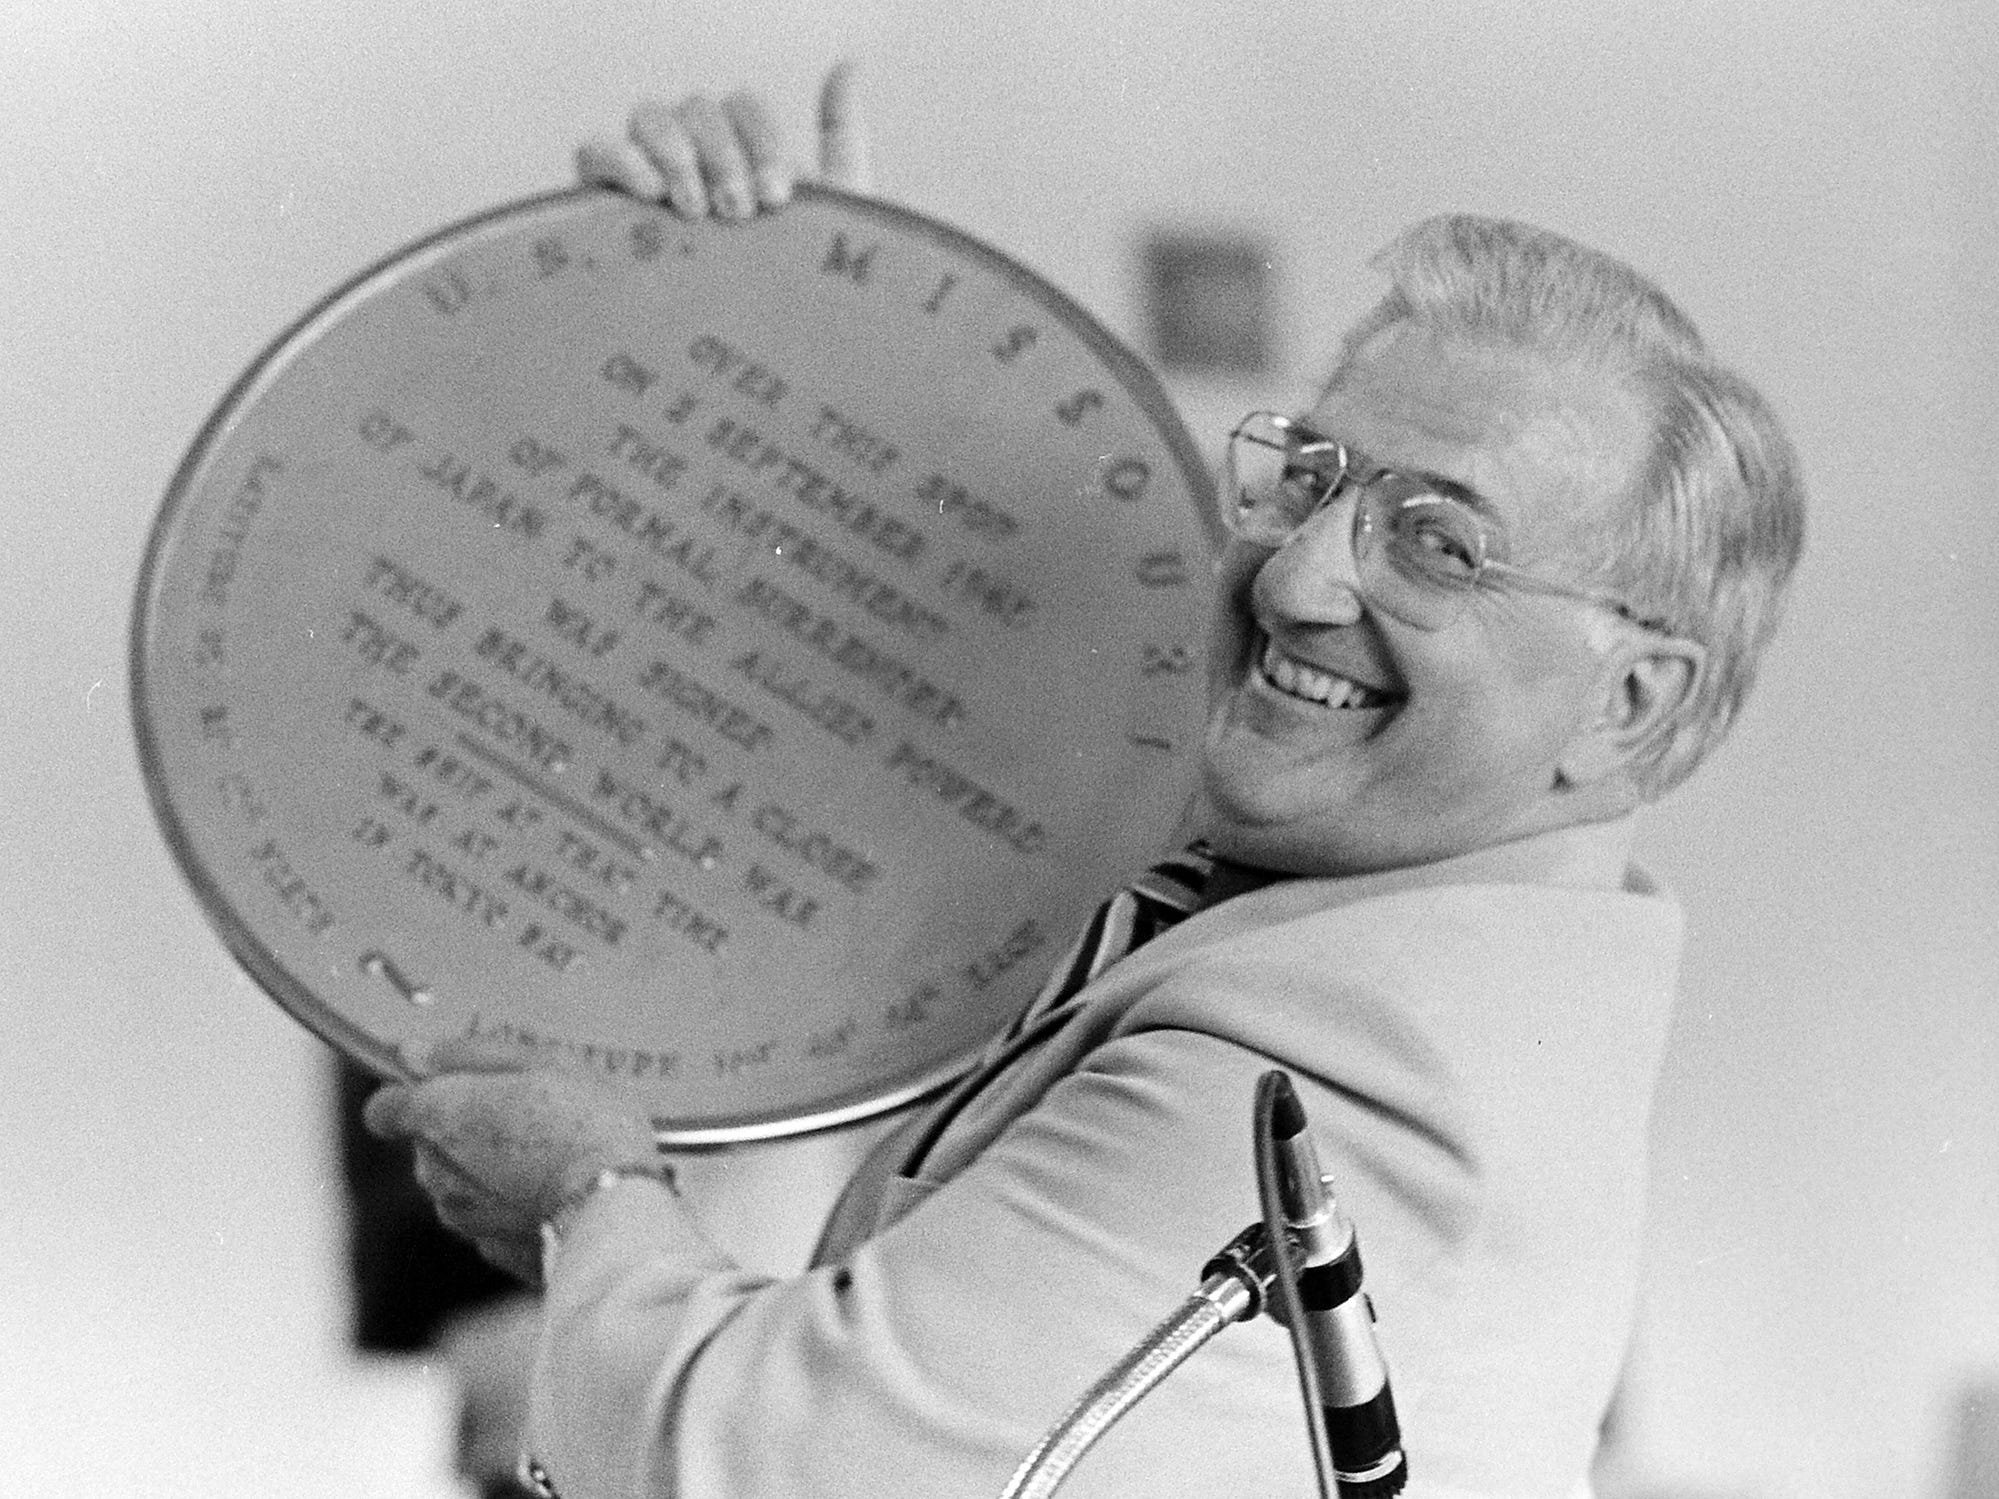 05/29/87